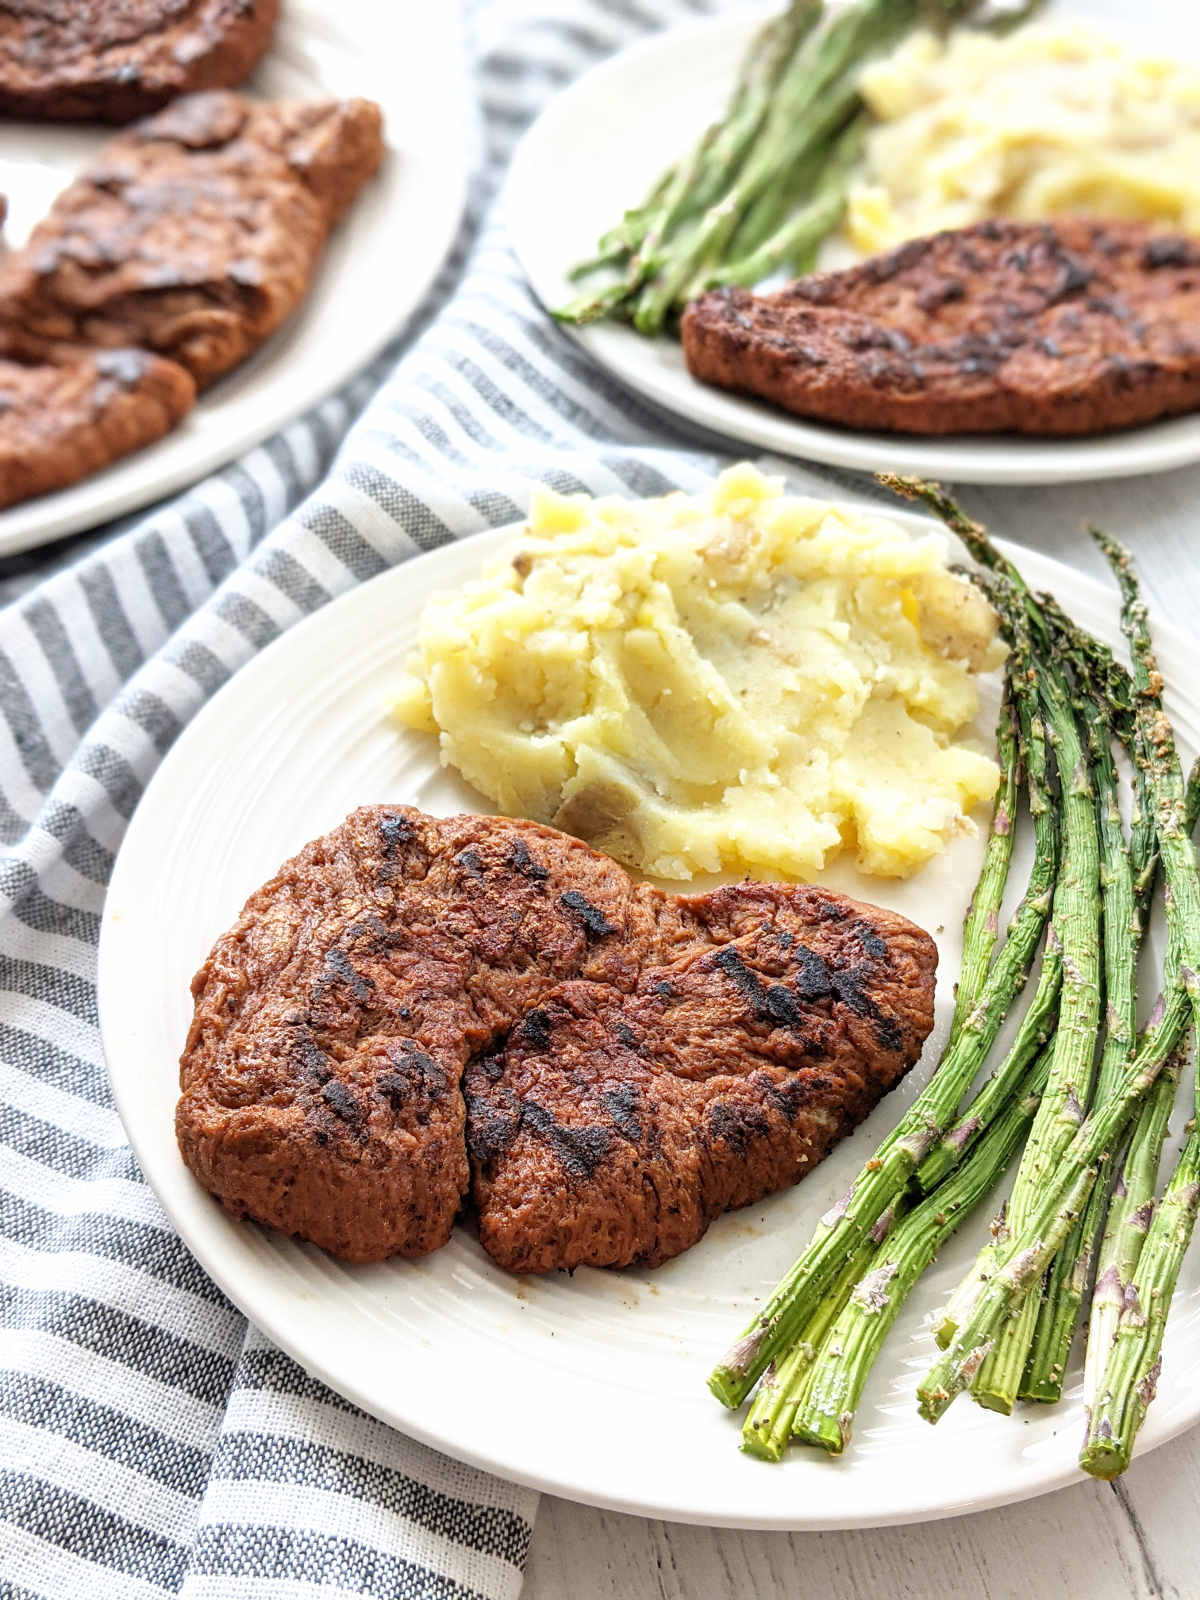 Vegan steak on a plate with mashed potatoes and roasted asparagus